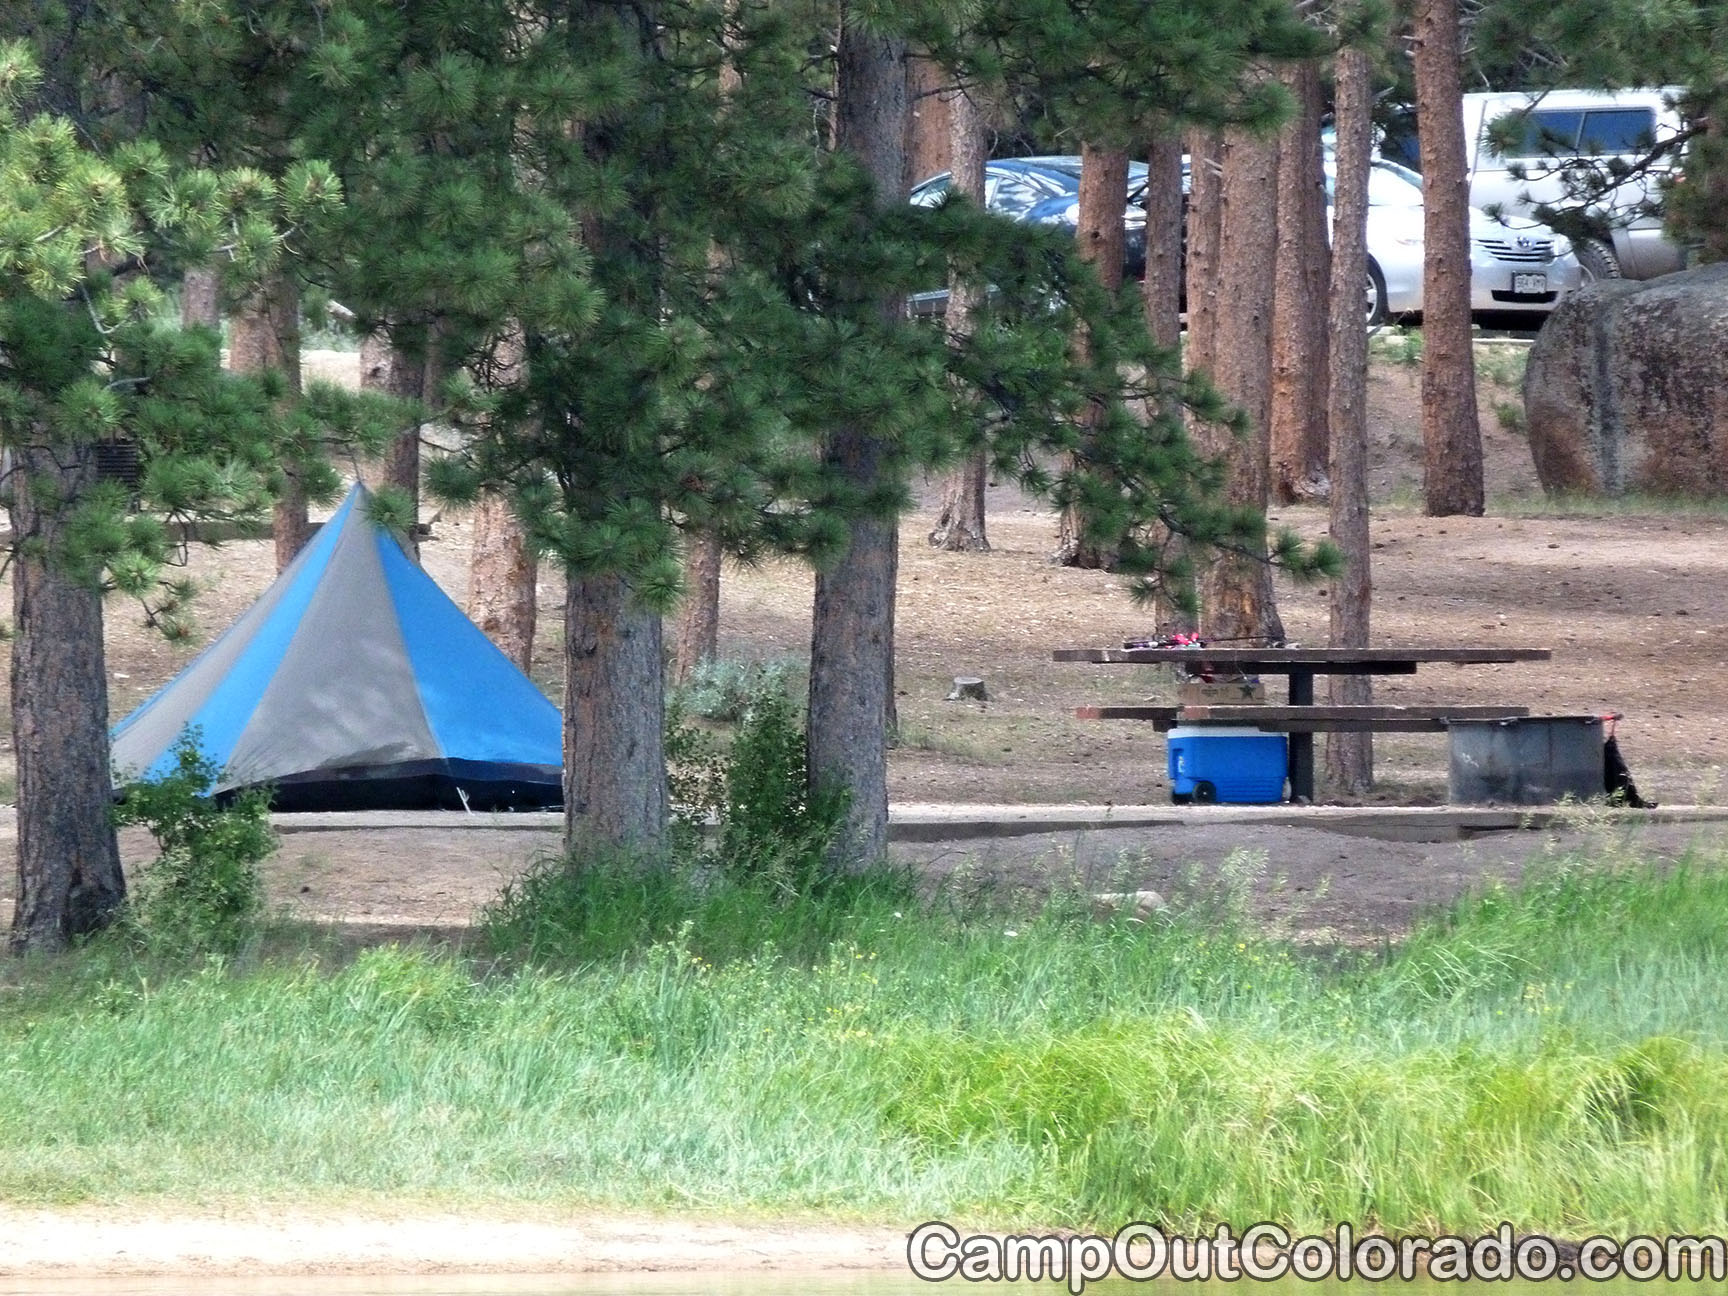 Campoutcolorado-dowdy-lake-campground-tent-camping